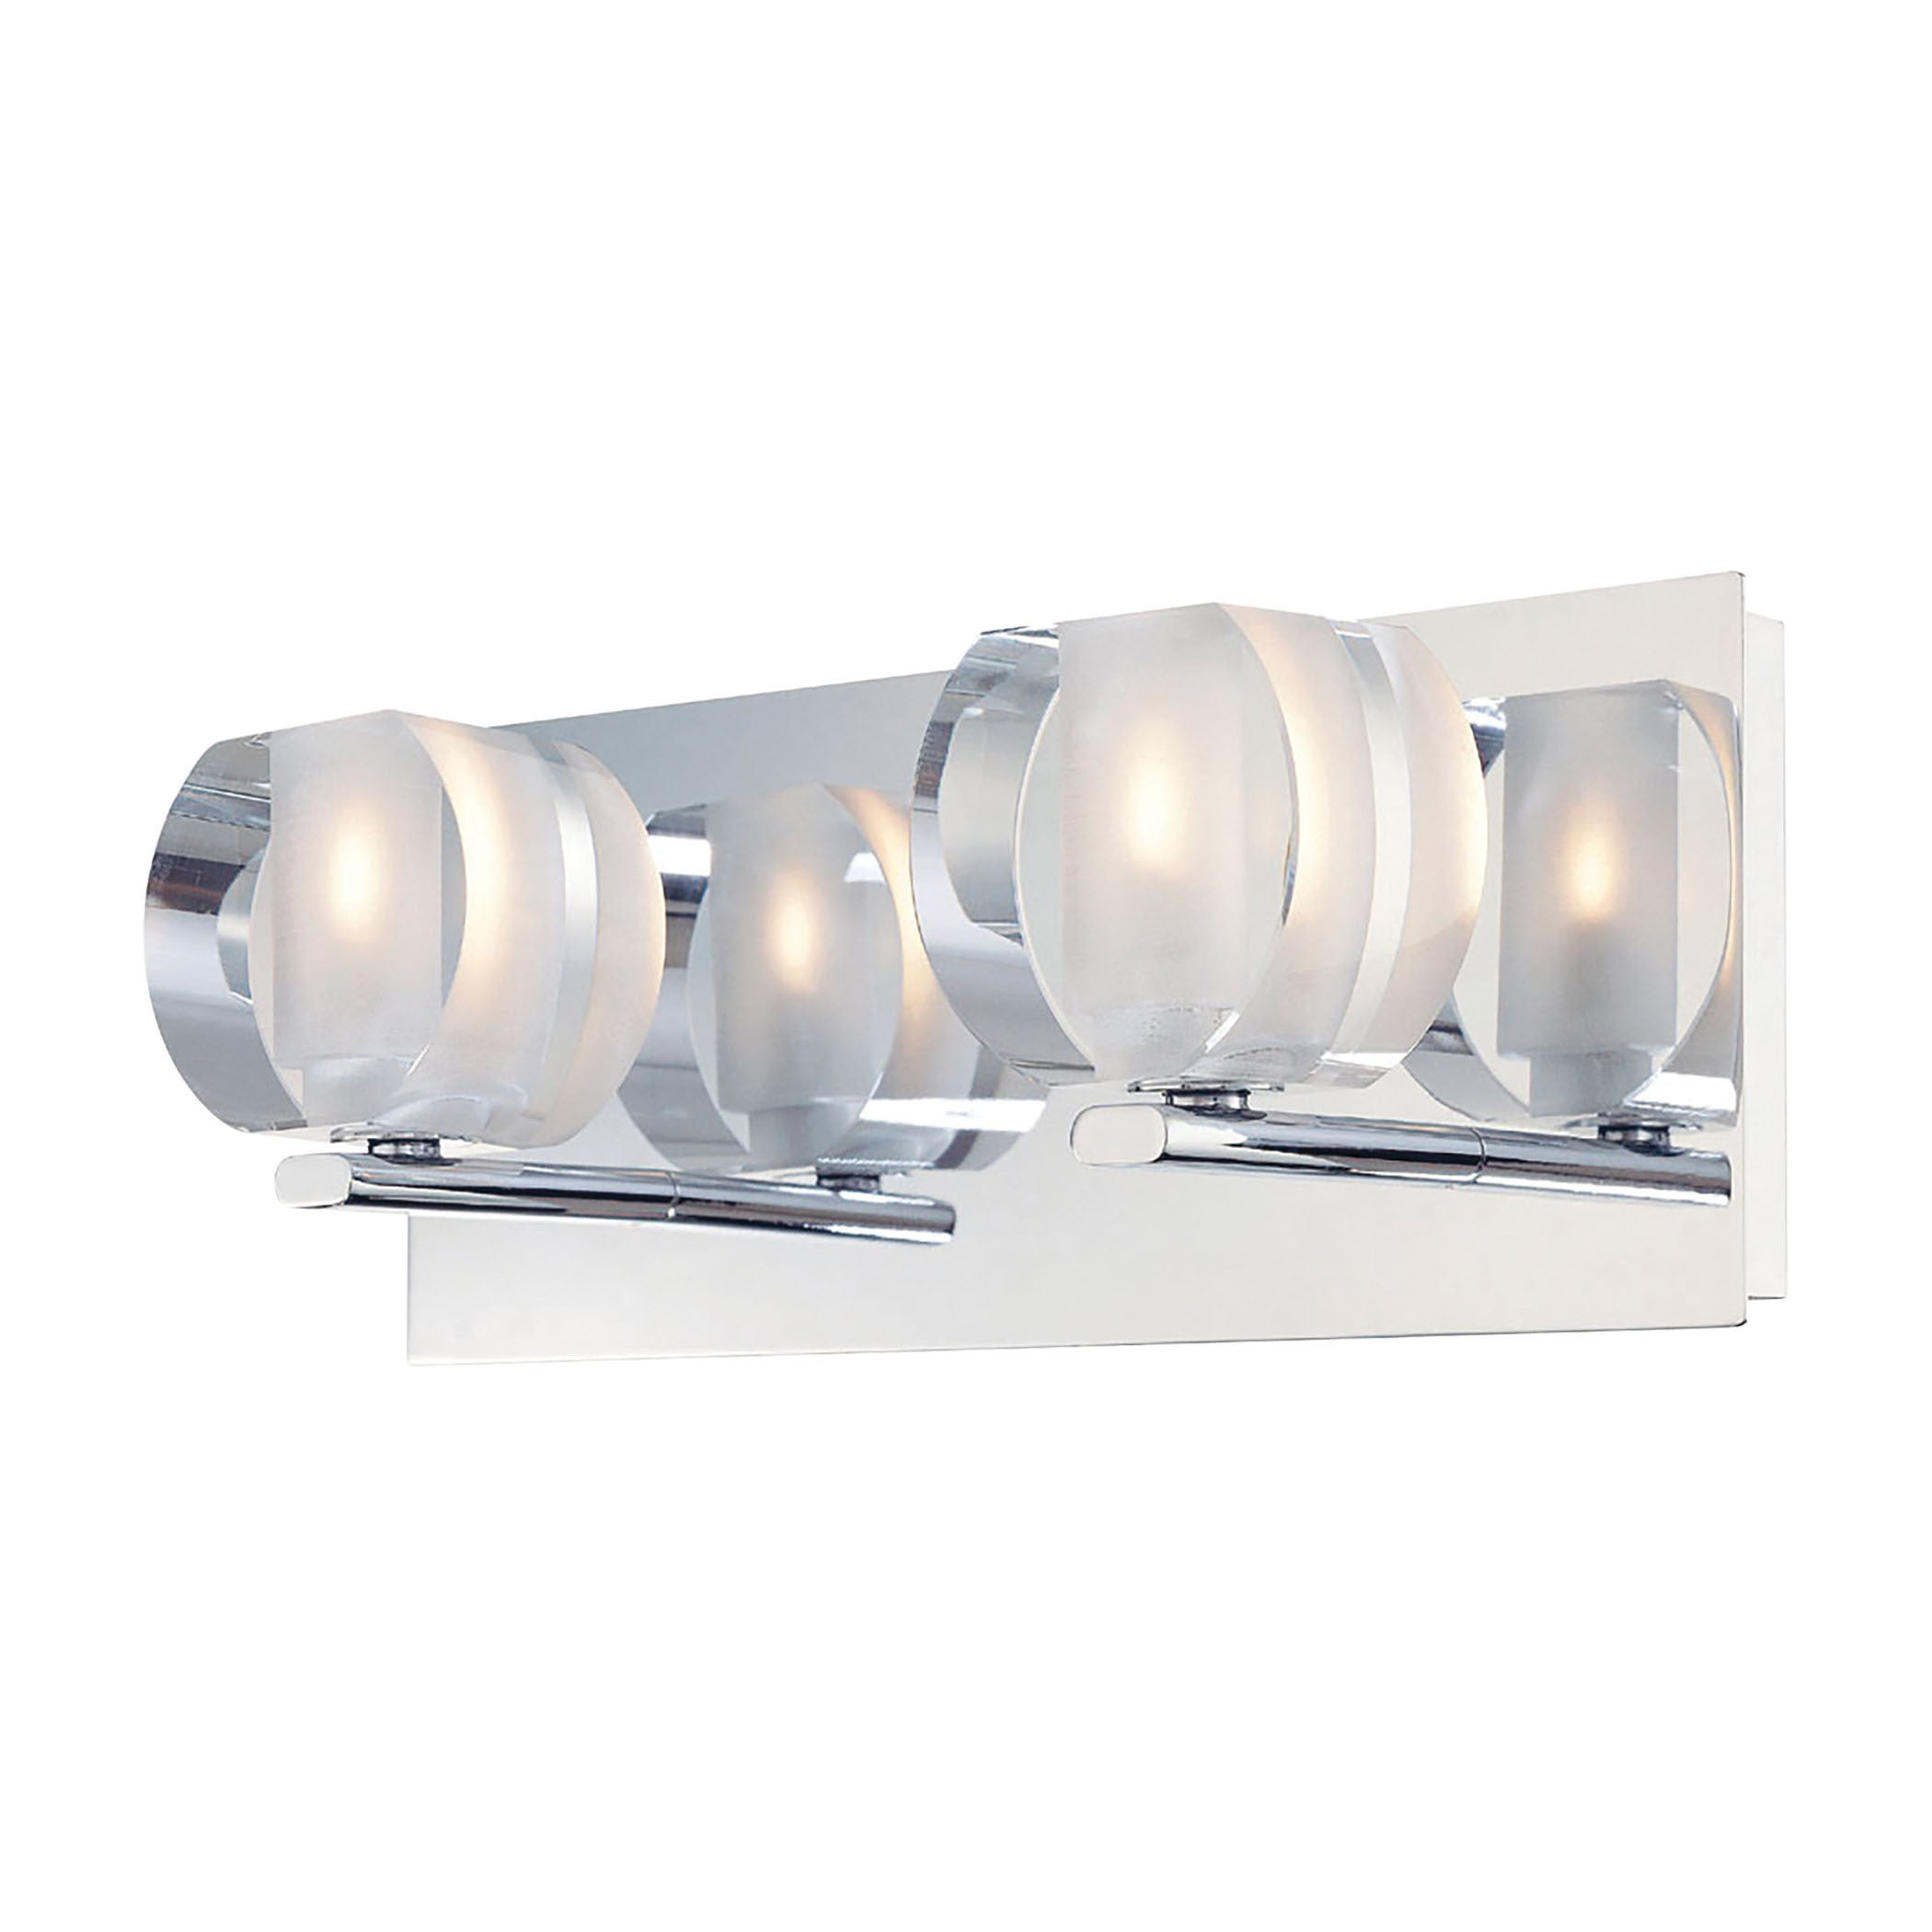 ALICO Circo Chrome and Polished Clear Glass 2-light Vanit...